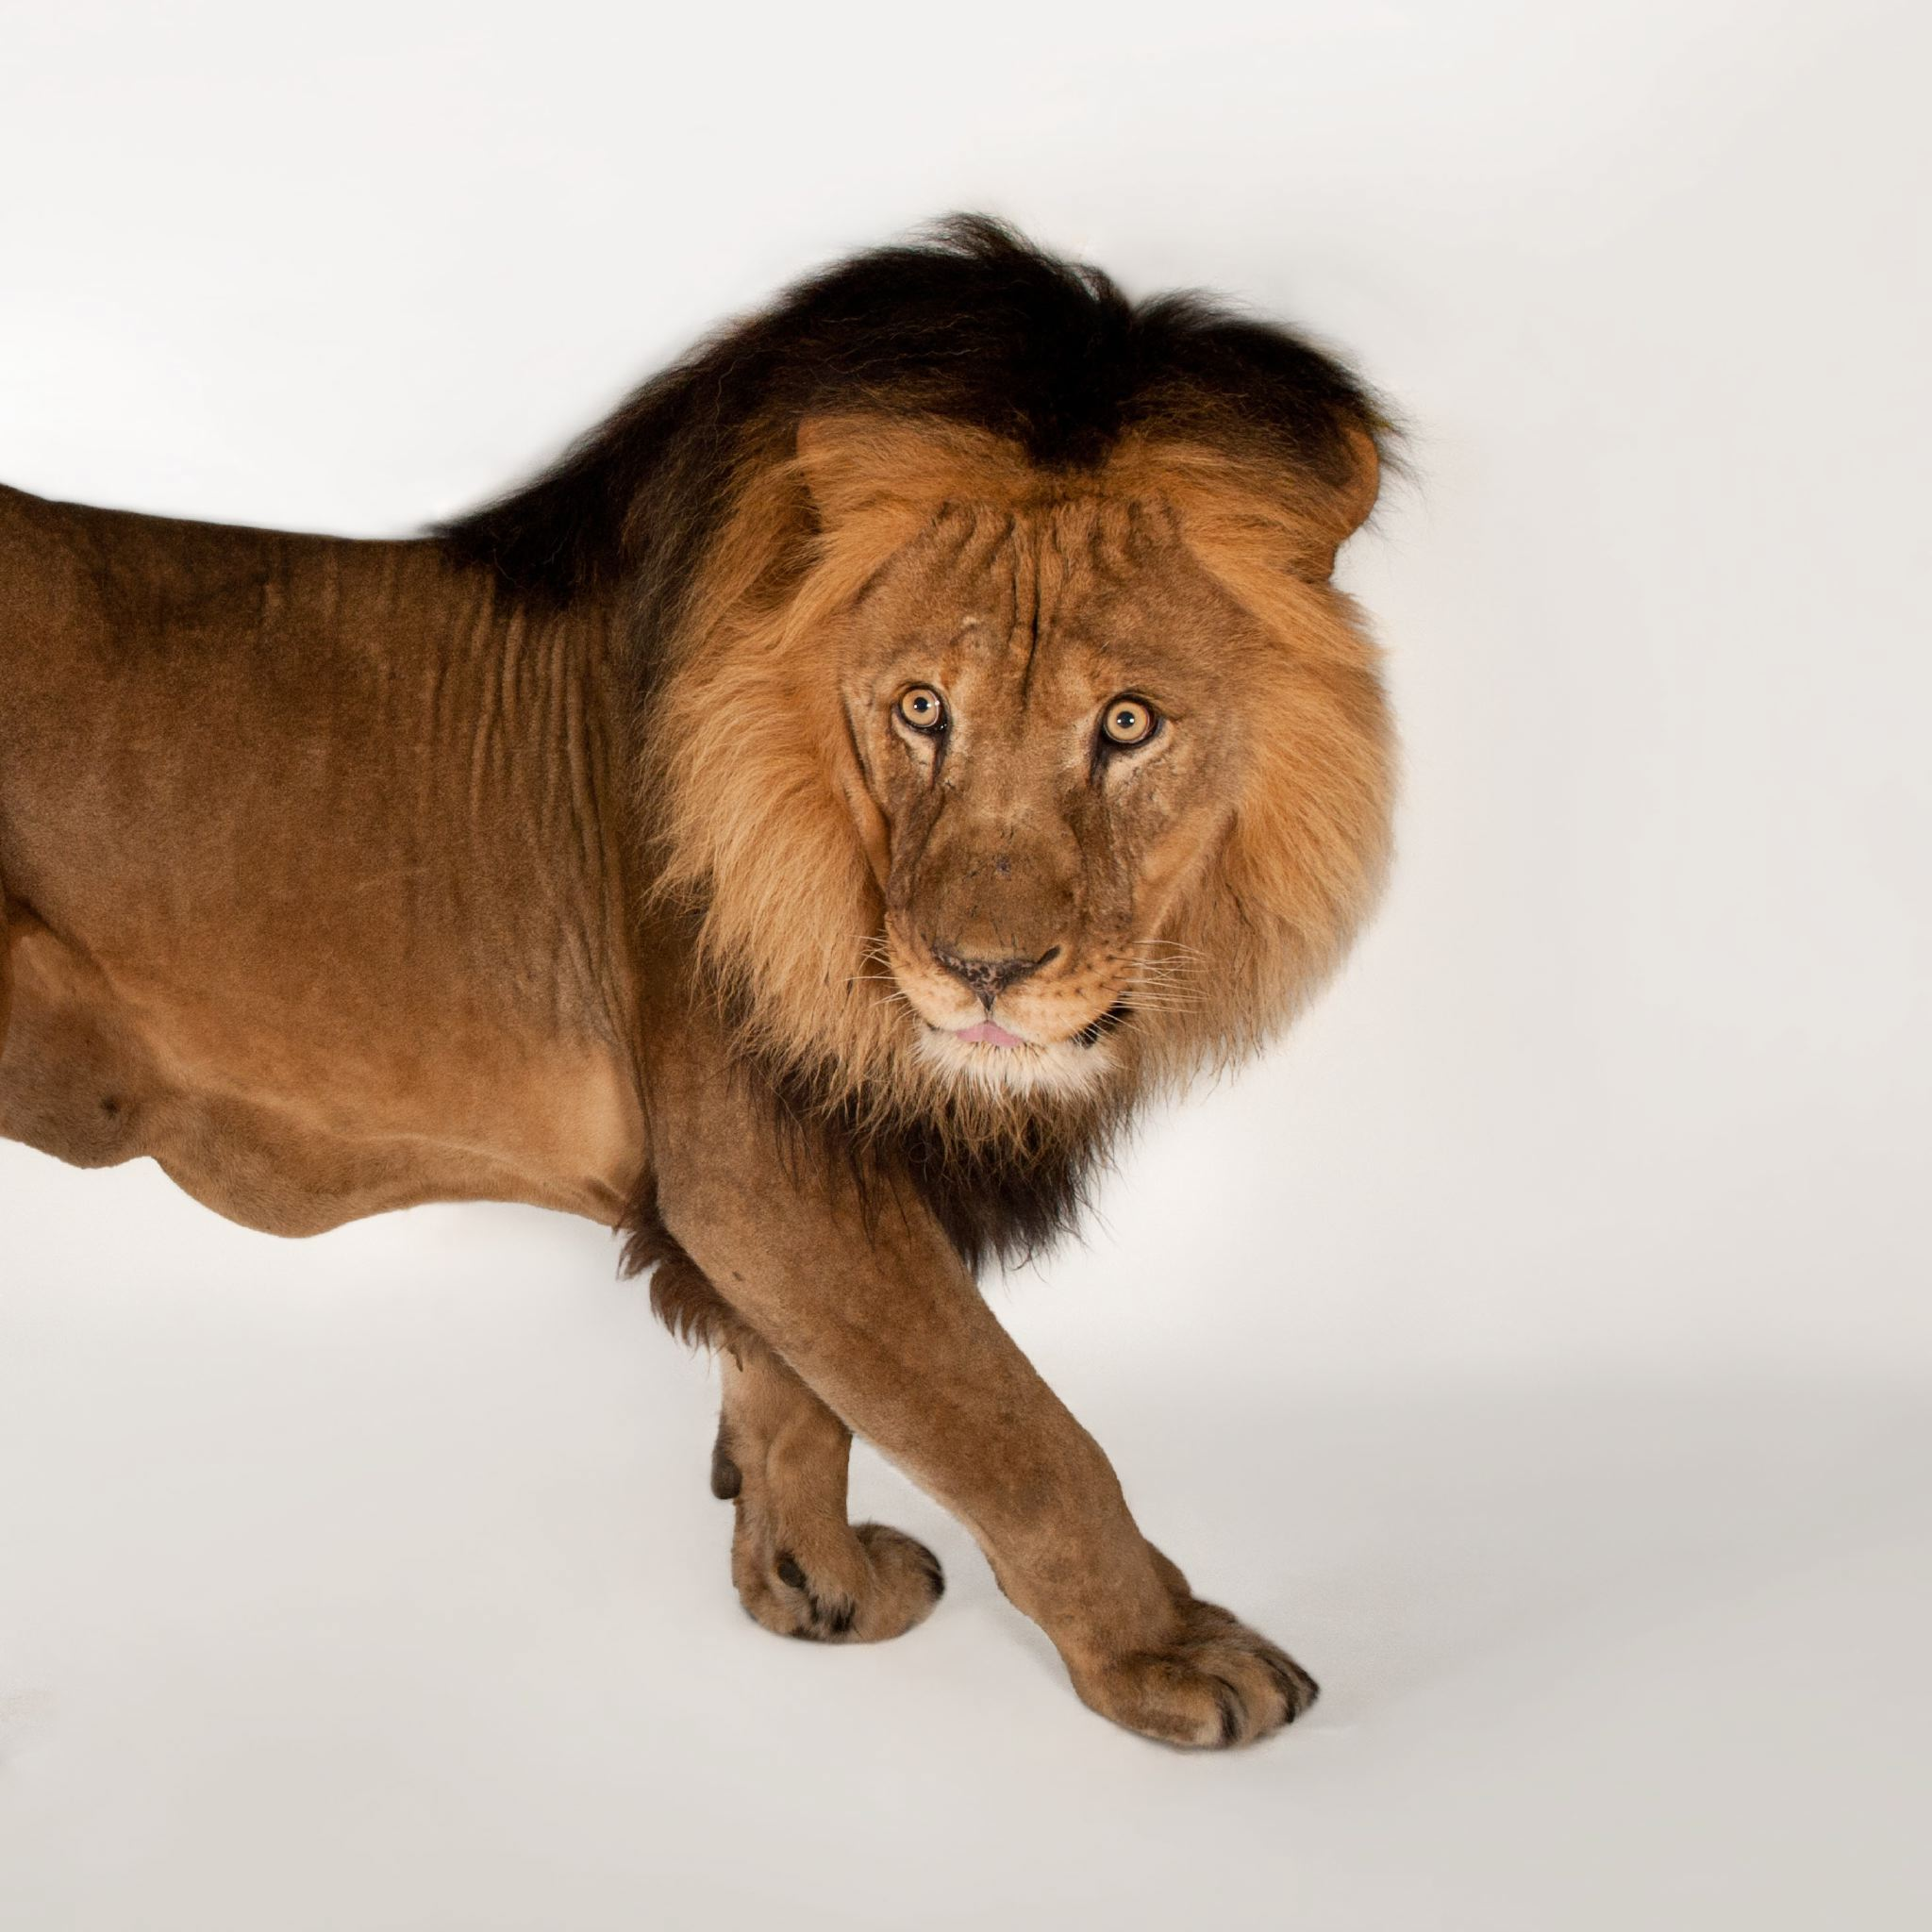 African Lion | National Geographic